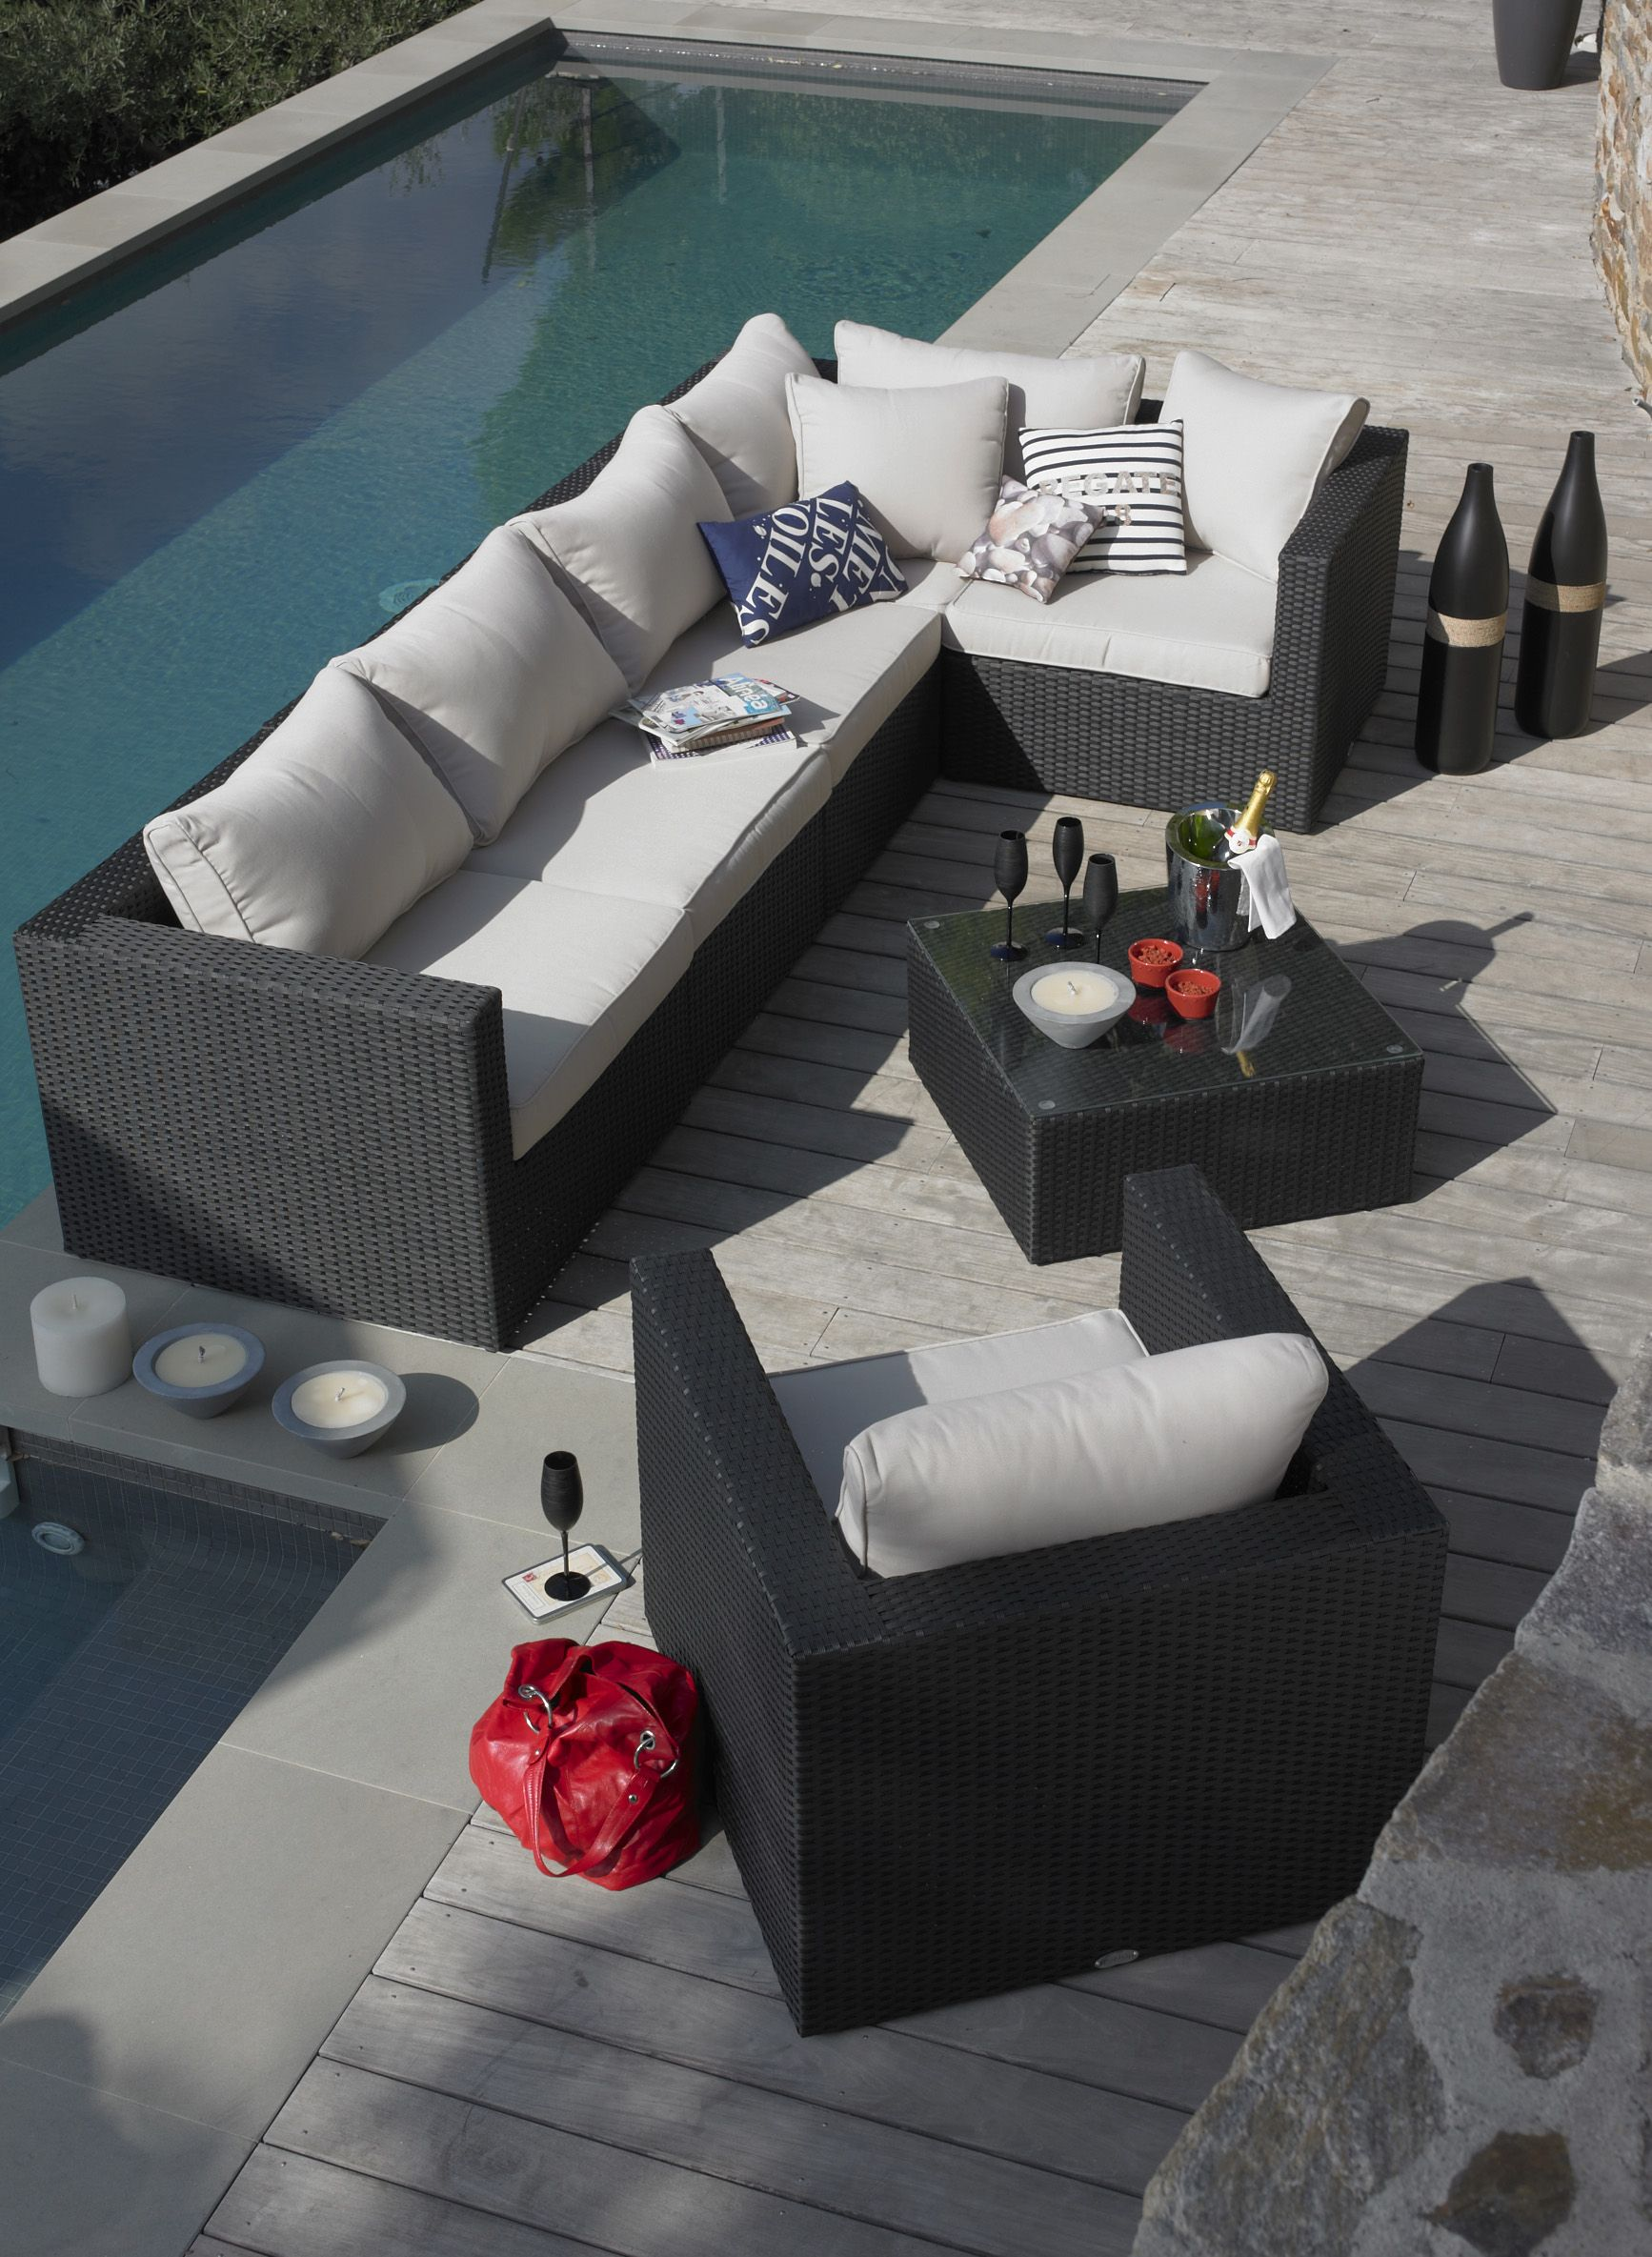 salon de jardin carlos pools pinterest alin a salon et ext rieur. Black Bedroom Furniture Sets. Home Design Ideas